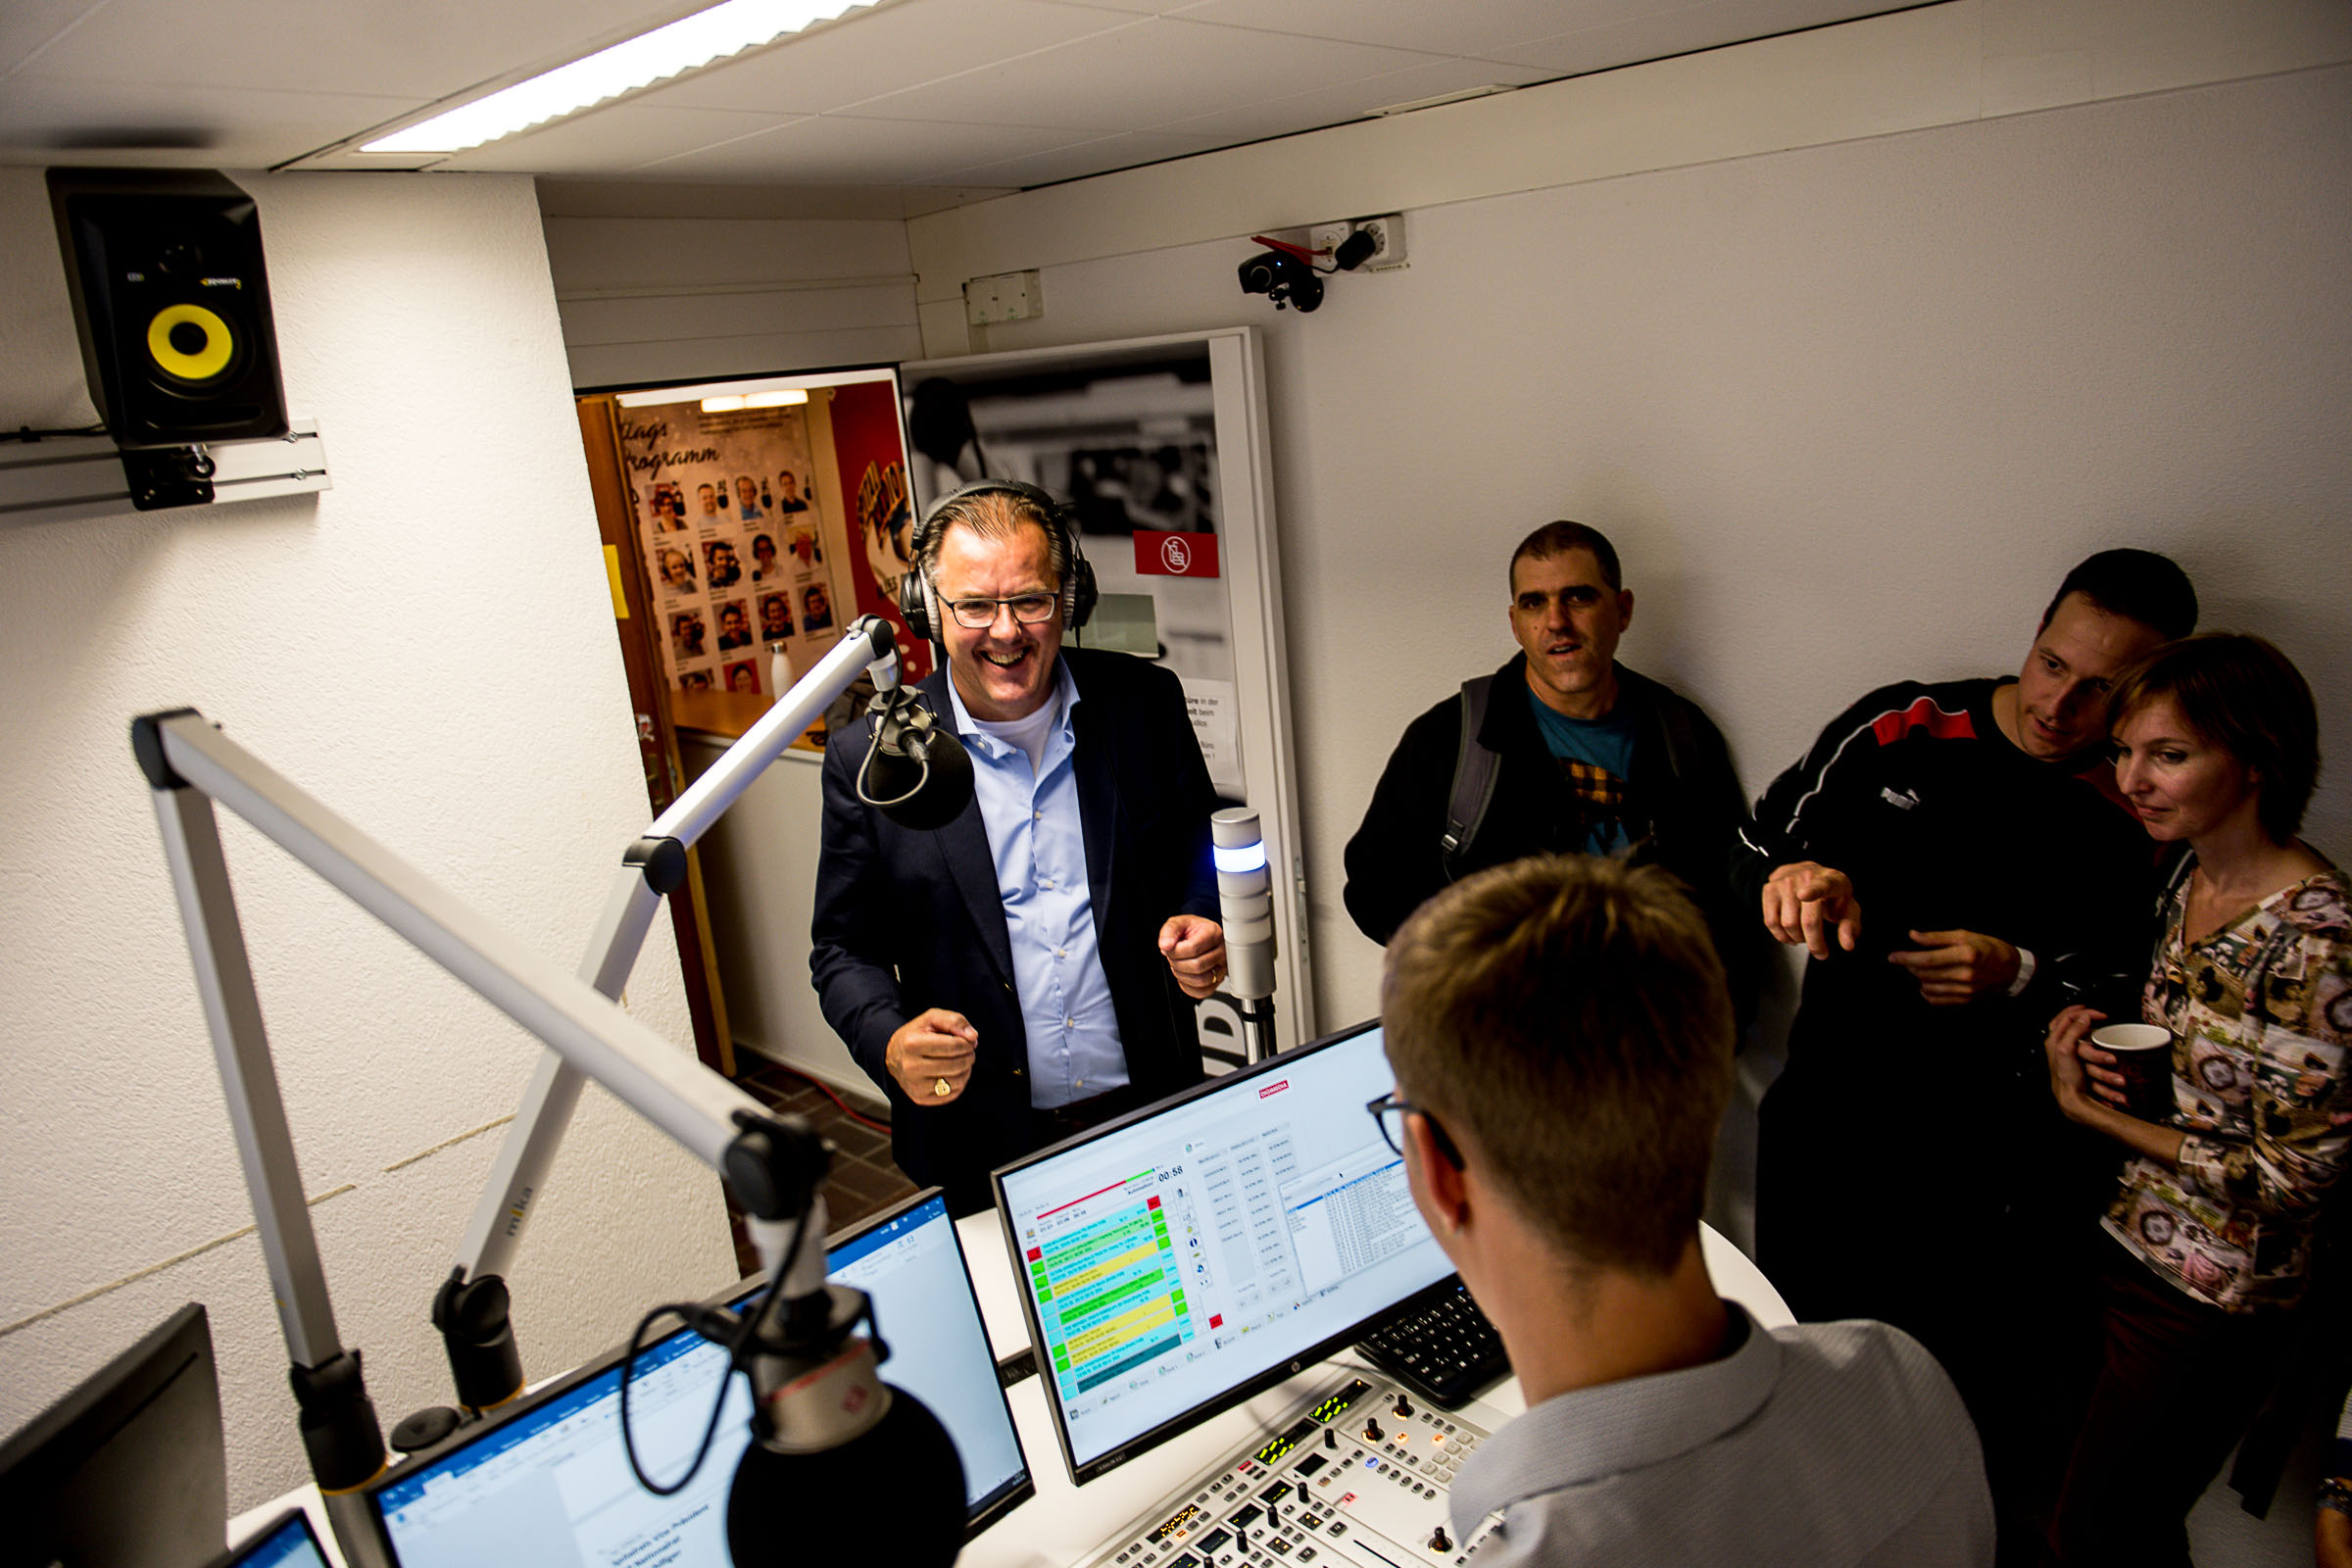 Peter Schilliger (Nationalrat FDP) im Interview bei Spitalradio LuZ